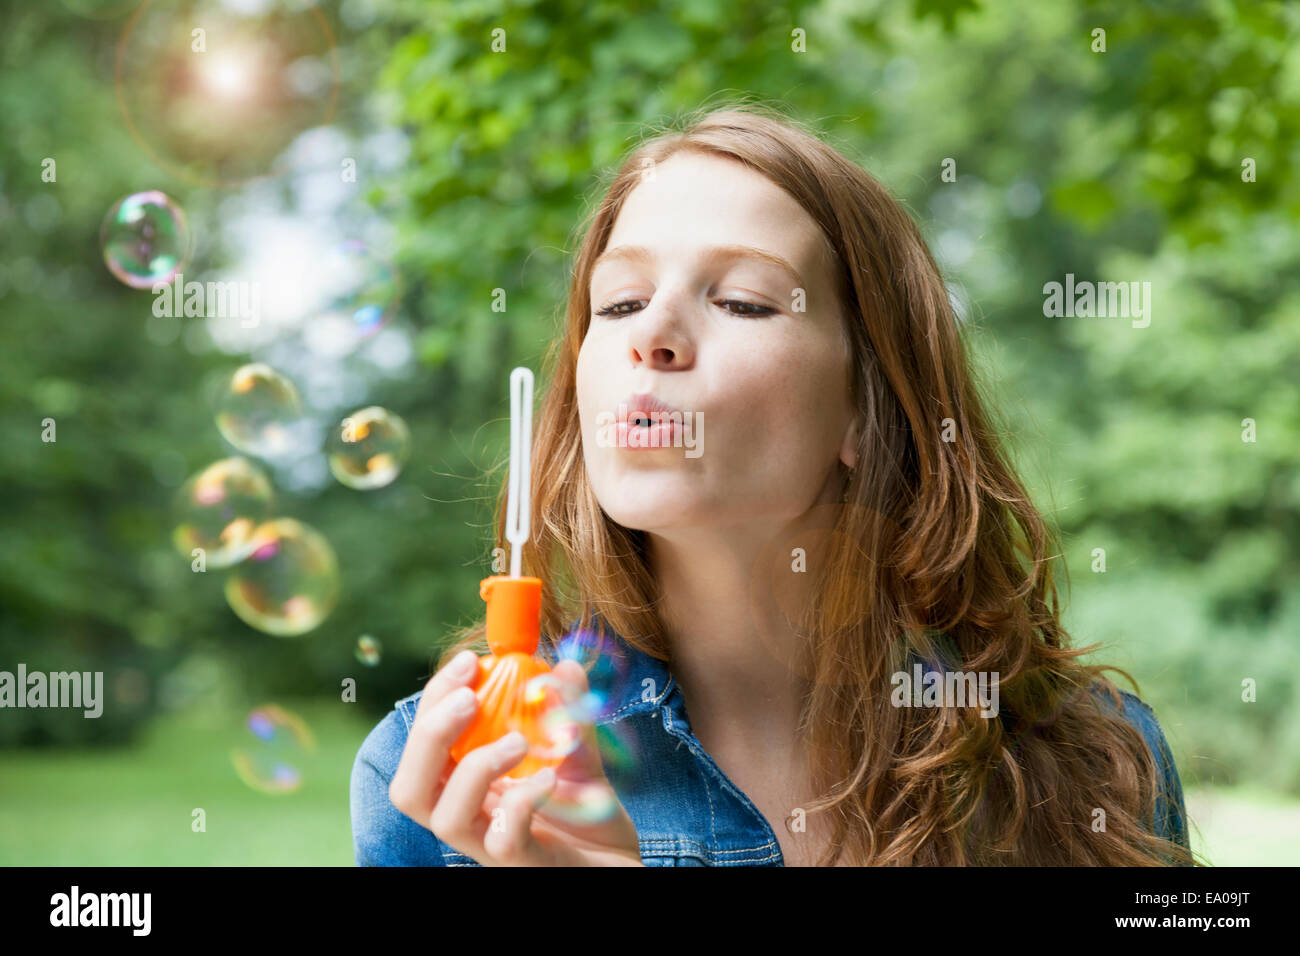 Young woman blowing bubbles in garden - Stock Image